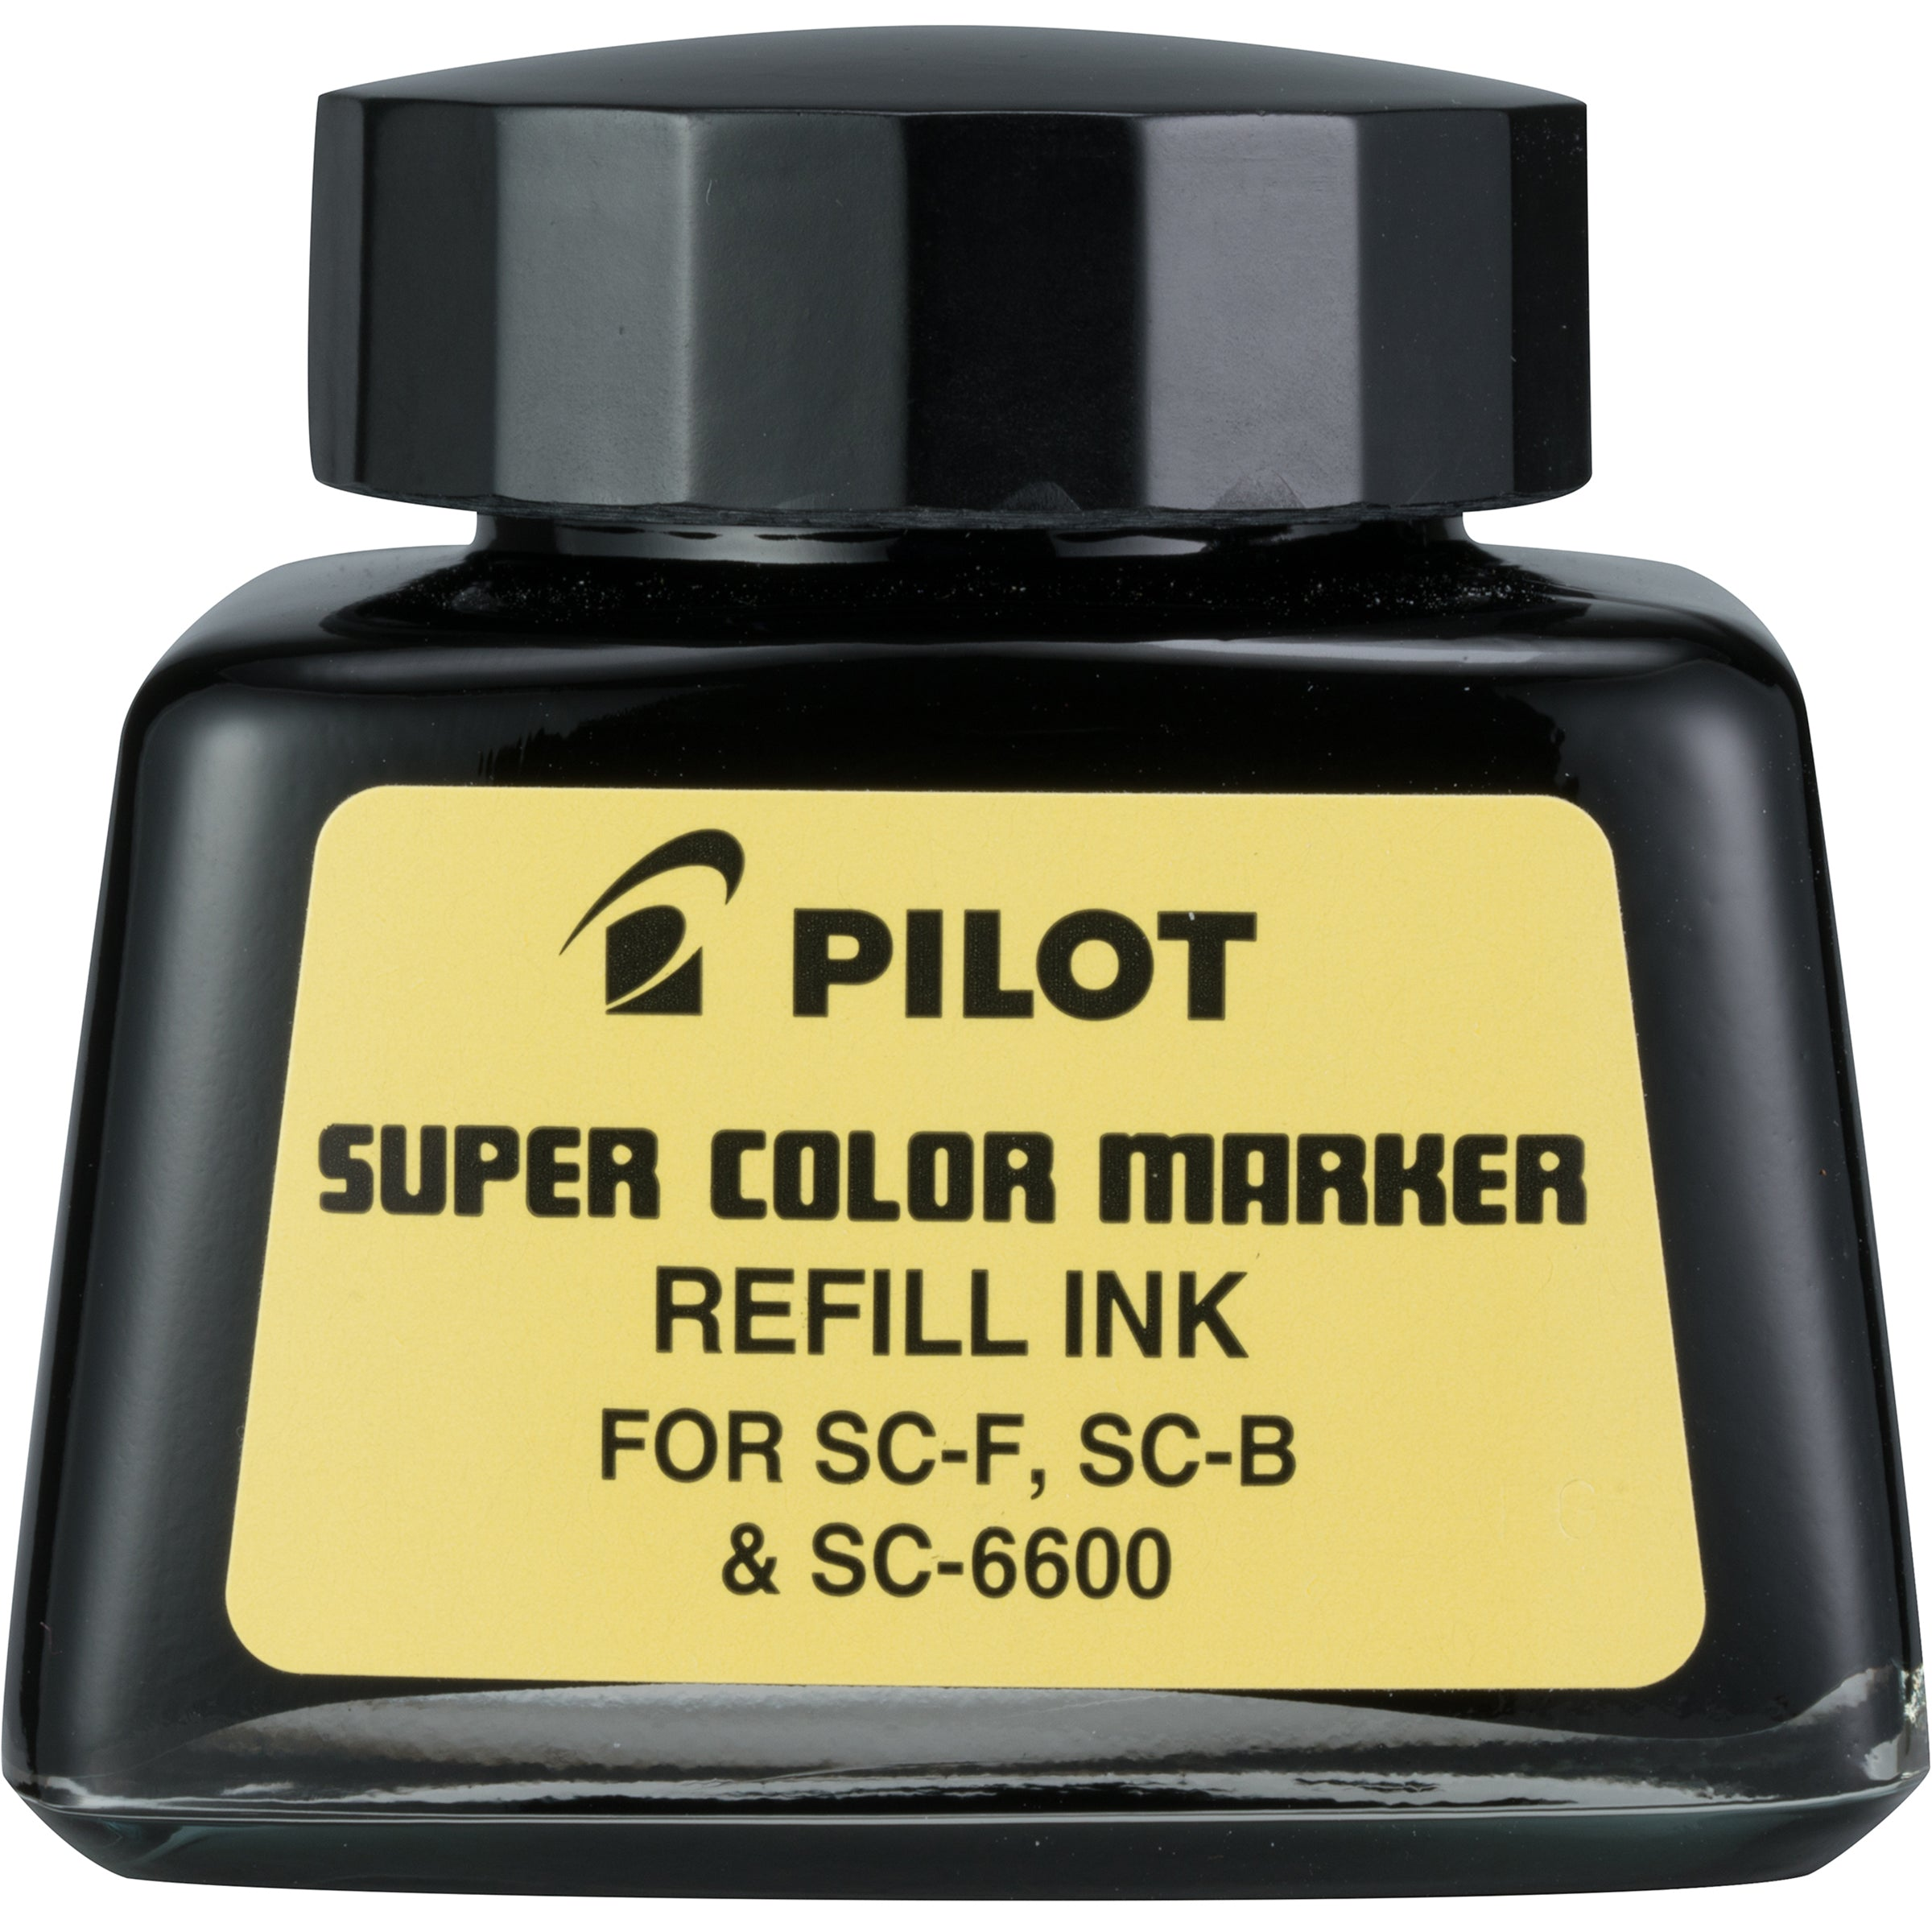 Pilot 43500, 43600, 43700, 43800 Super Color Permanent Marker Refill Ink, 1 Ounce Bottle with Dropper